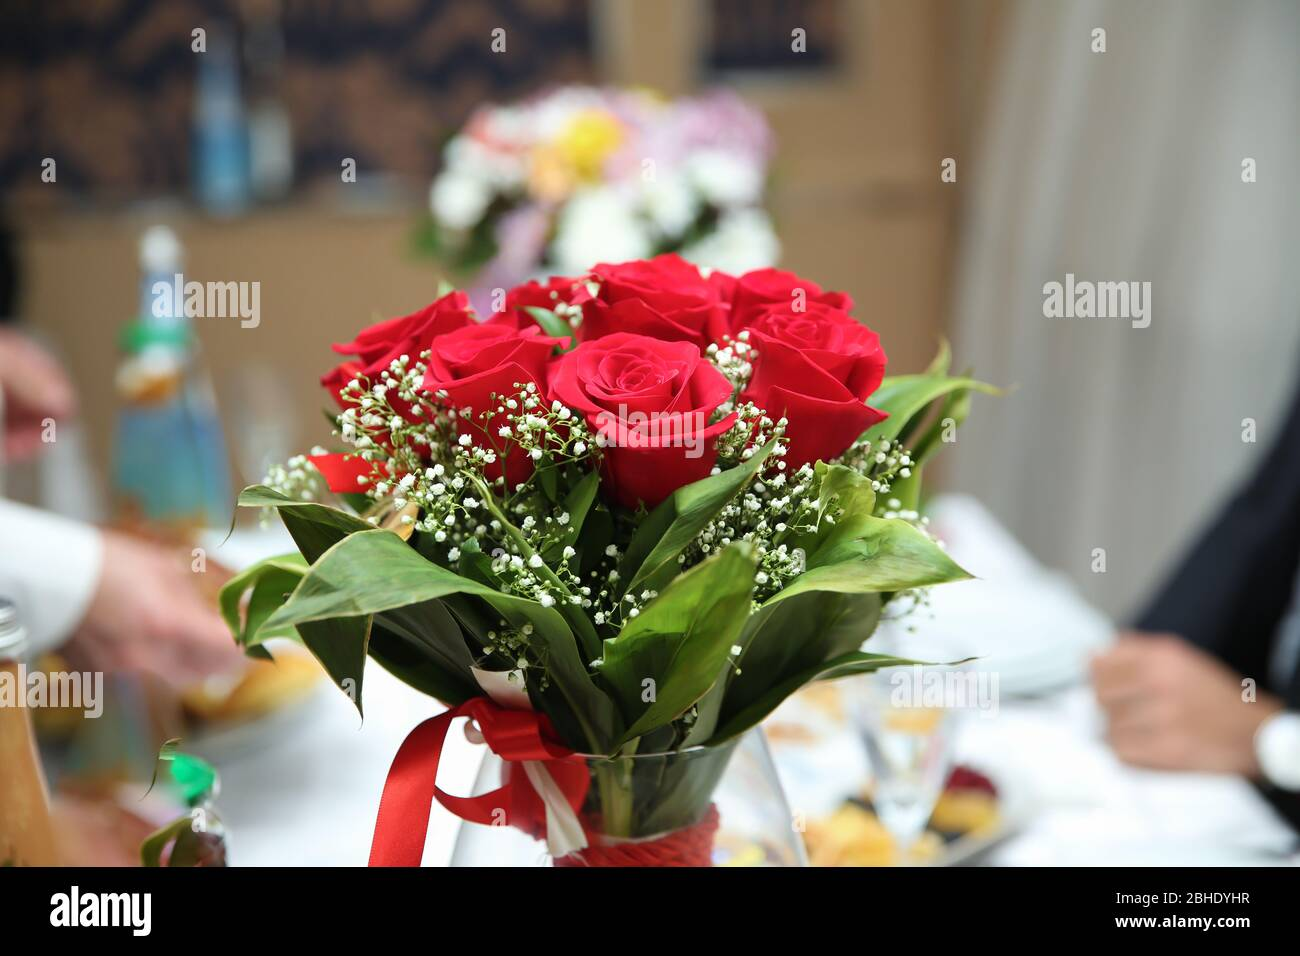 Red Rose Bouquet Beautiful Green Bouquet Of Red Flowers In A Glass Vase Red Wedding Bouquet In A Glass Jar Stock Photo Alamy